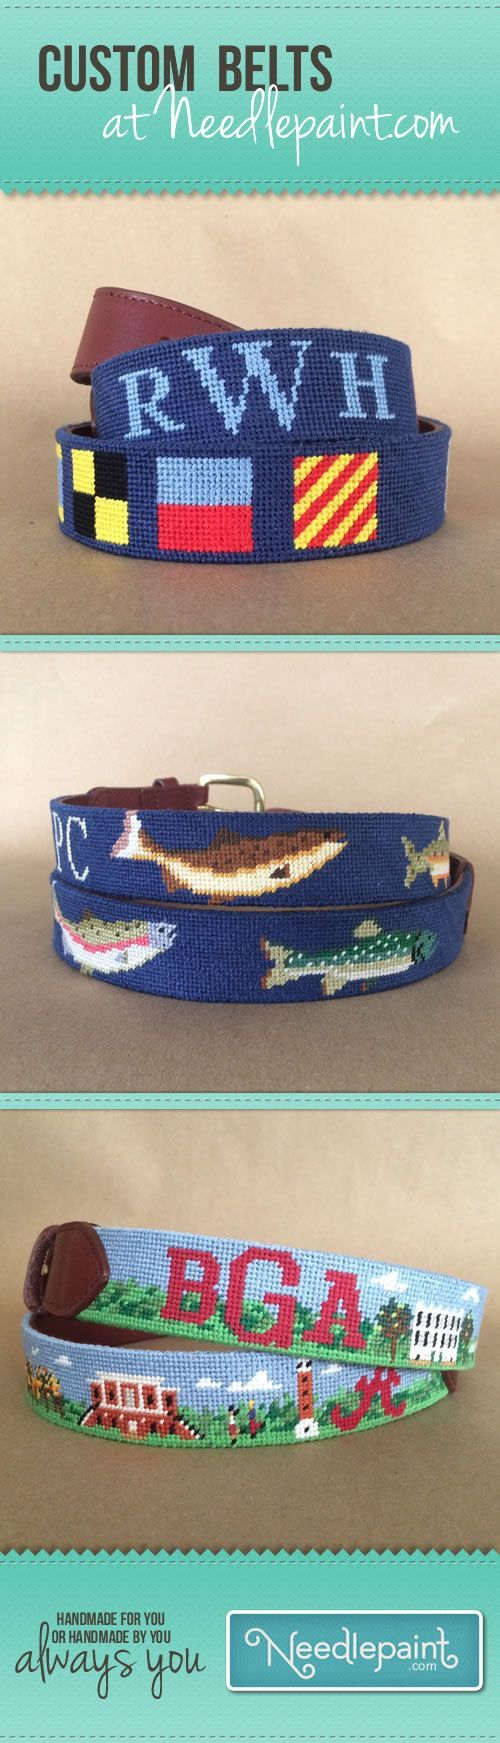 Let us design a custom #NeedlepointBelt for you!  We can create something from scratch or personalize an existing design.  We sell DIY needlepoint kits and fully stitched hand crafted Custom needlepoint belts.  Learn more at www.Needlepaint.com